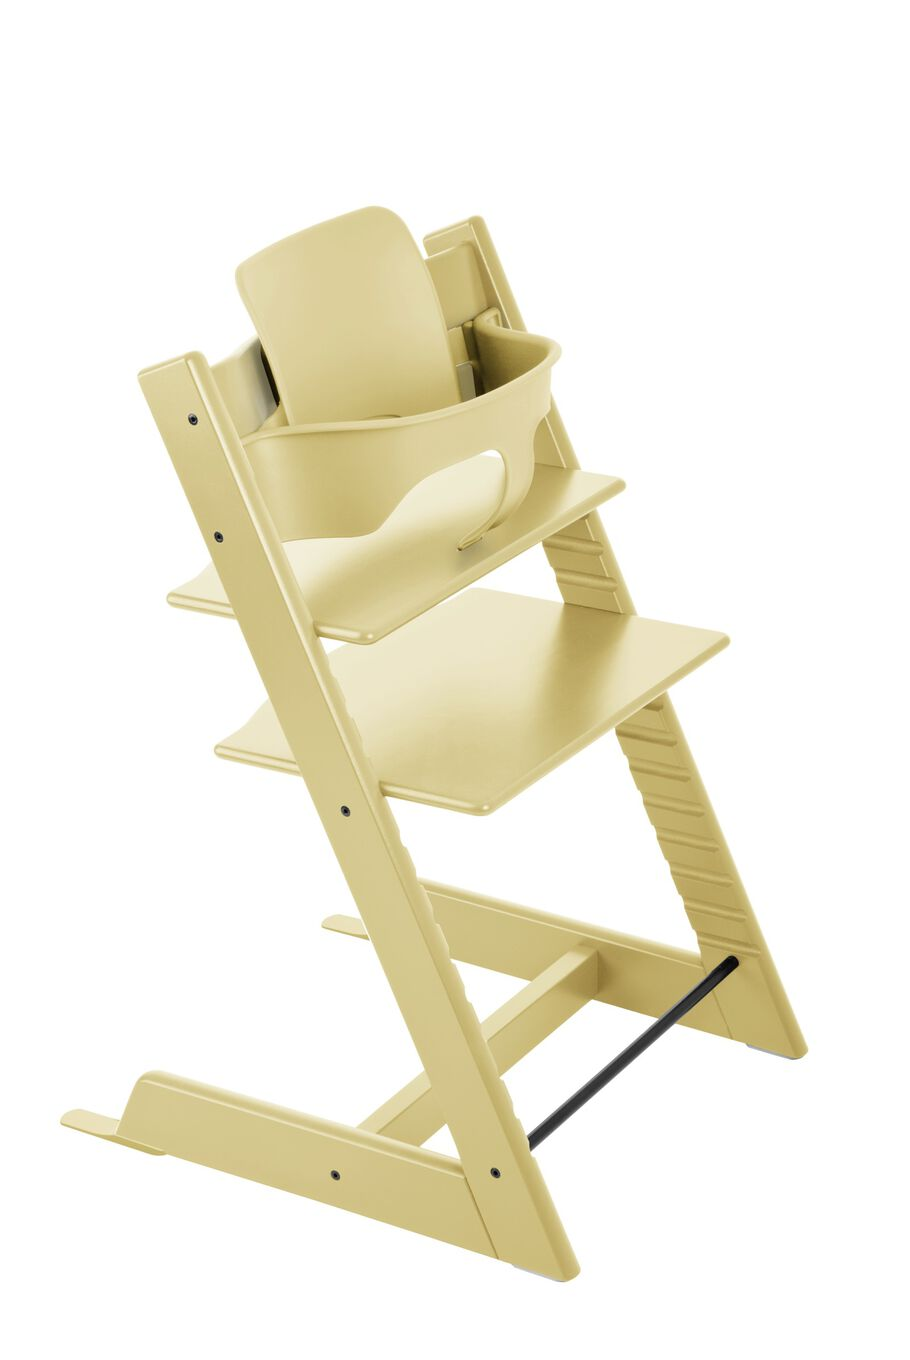 Tripp Trapp® with Tripp Trapp® Baby Set, Wheat Yellow.